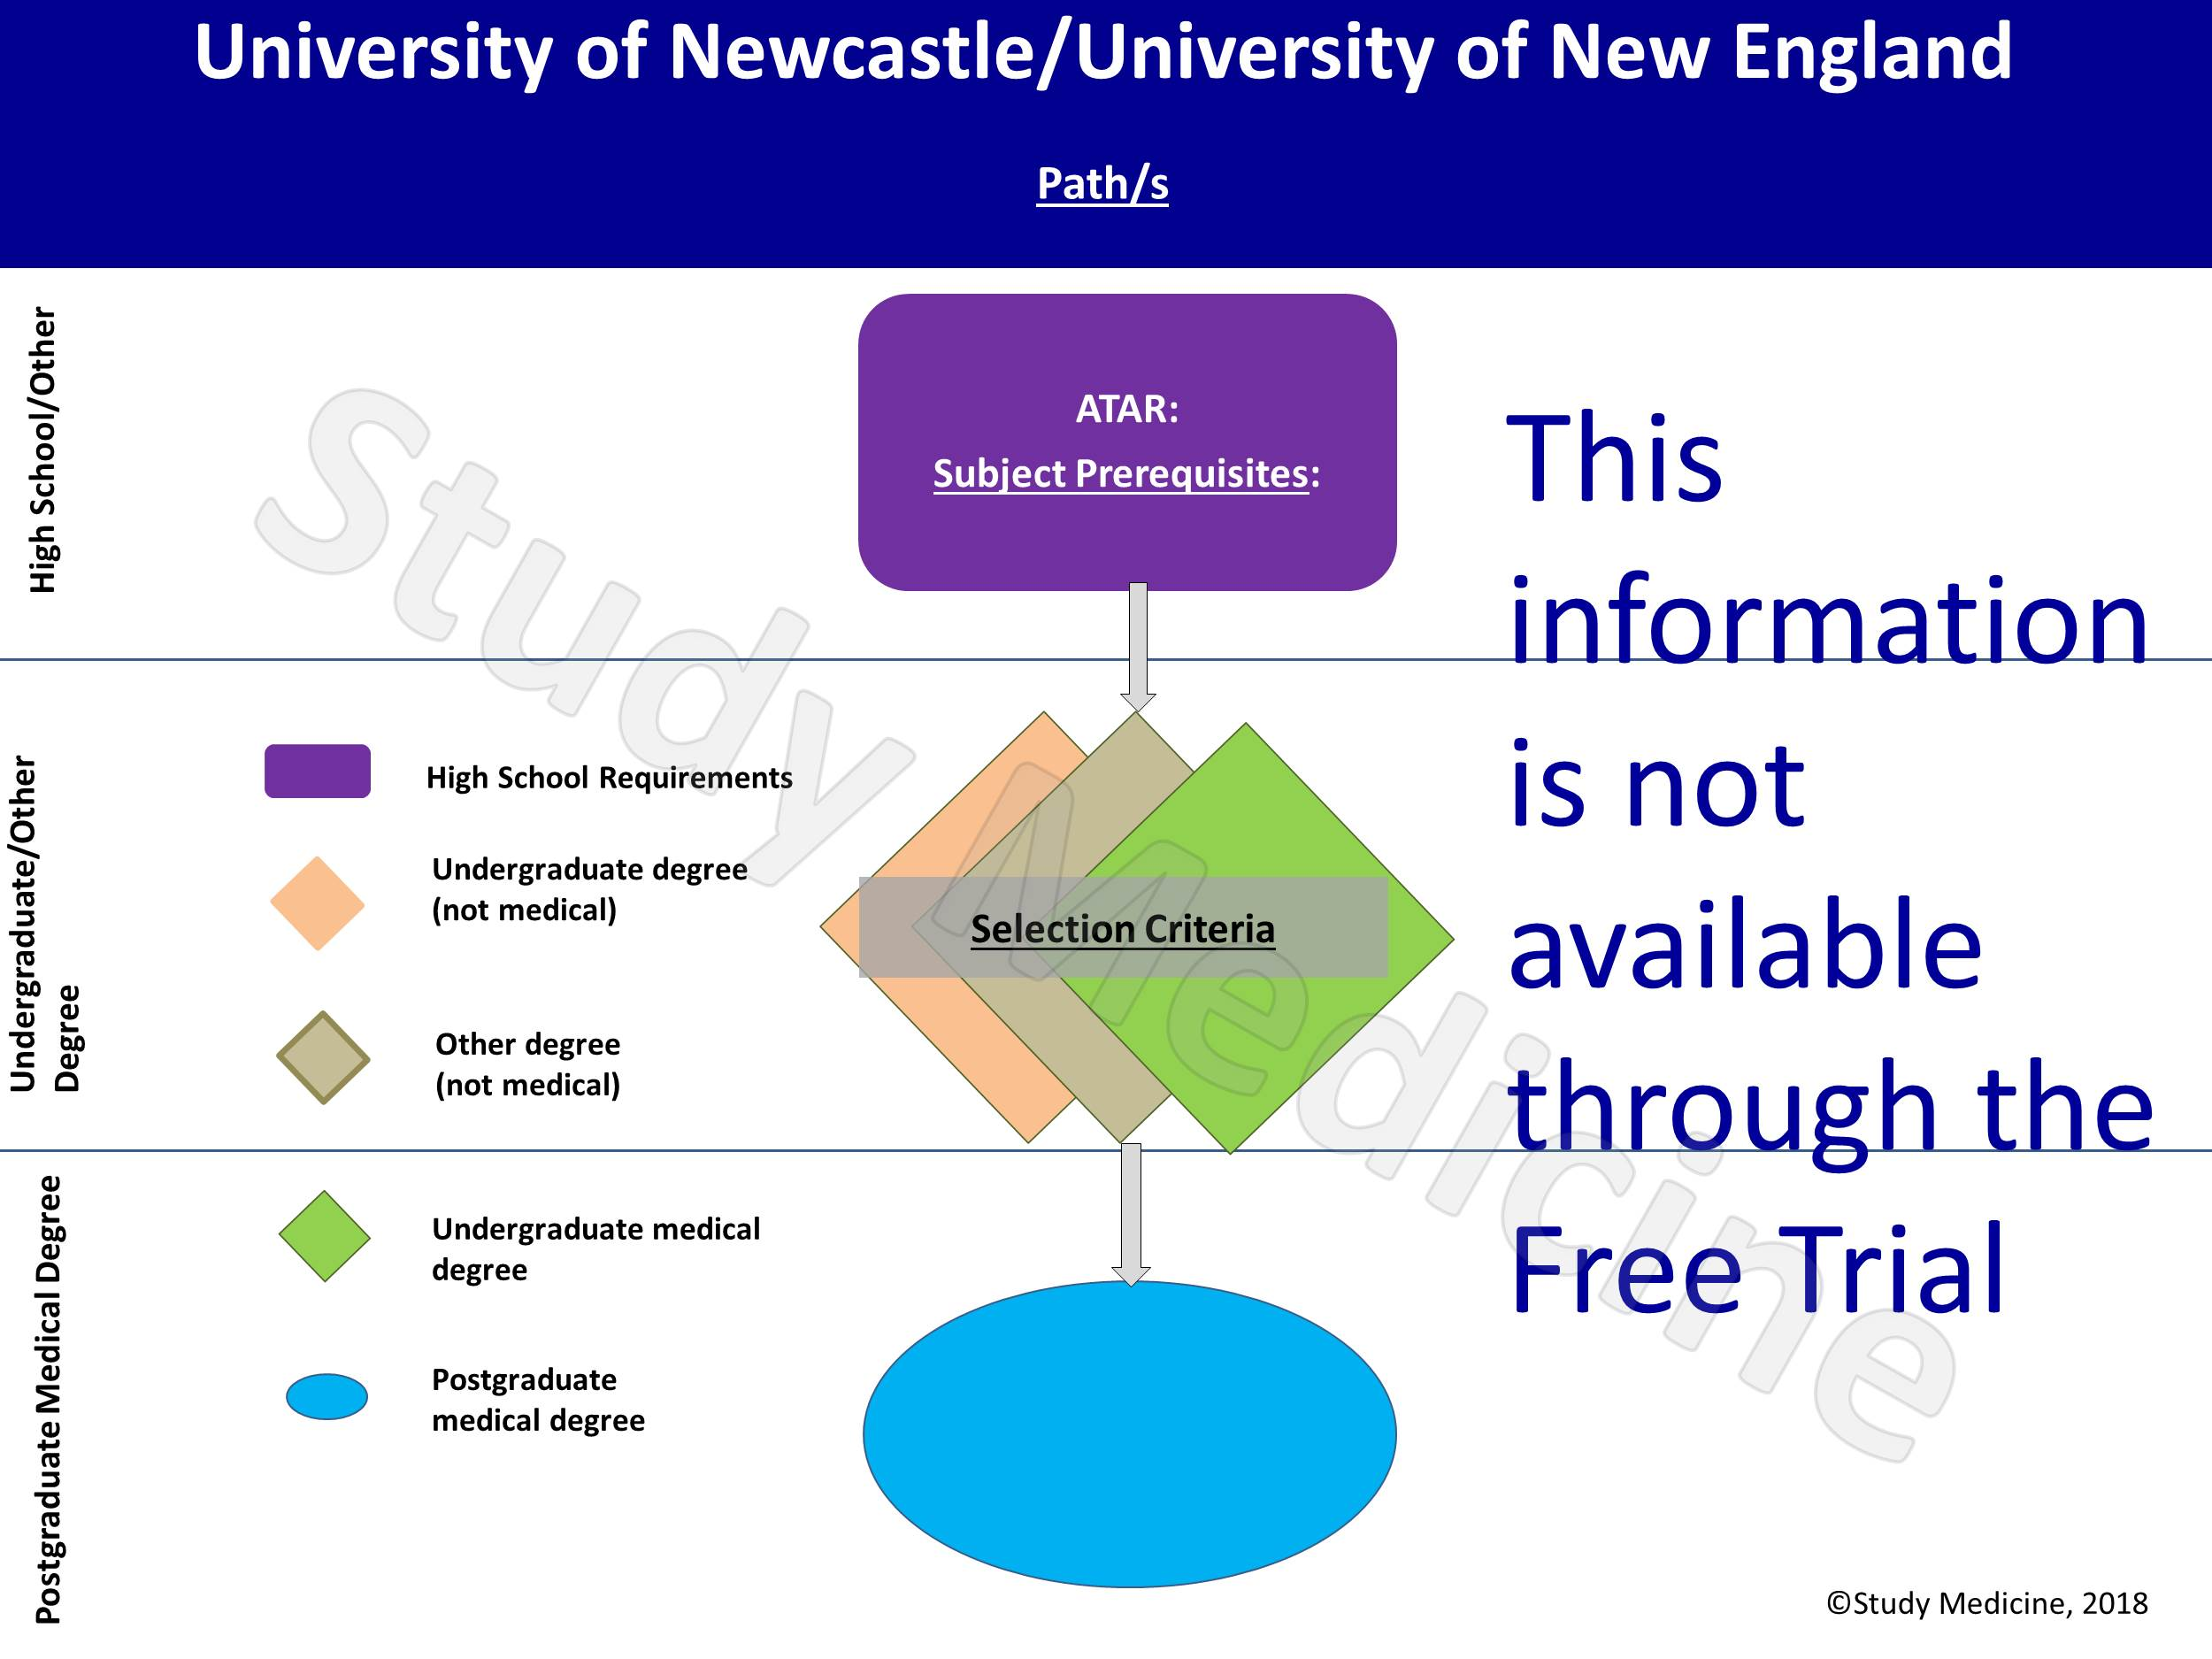 university-of-newcastle-new-england-medical-school